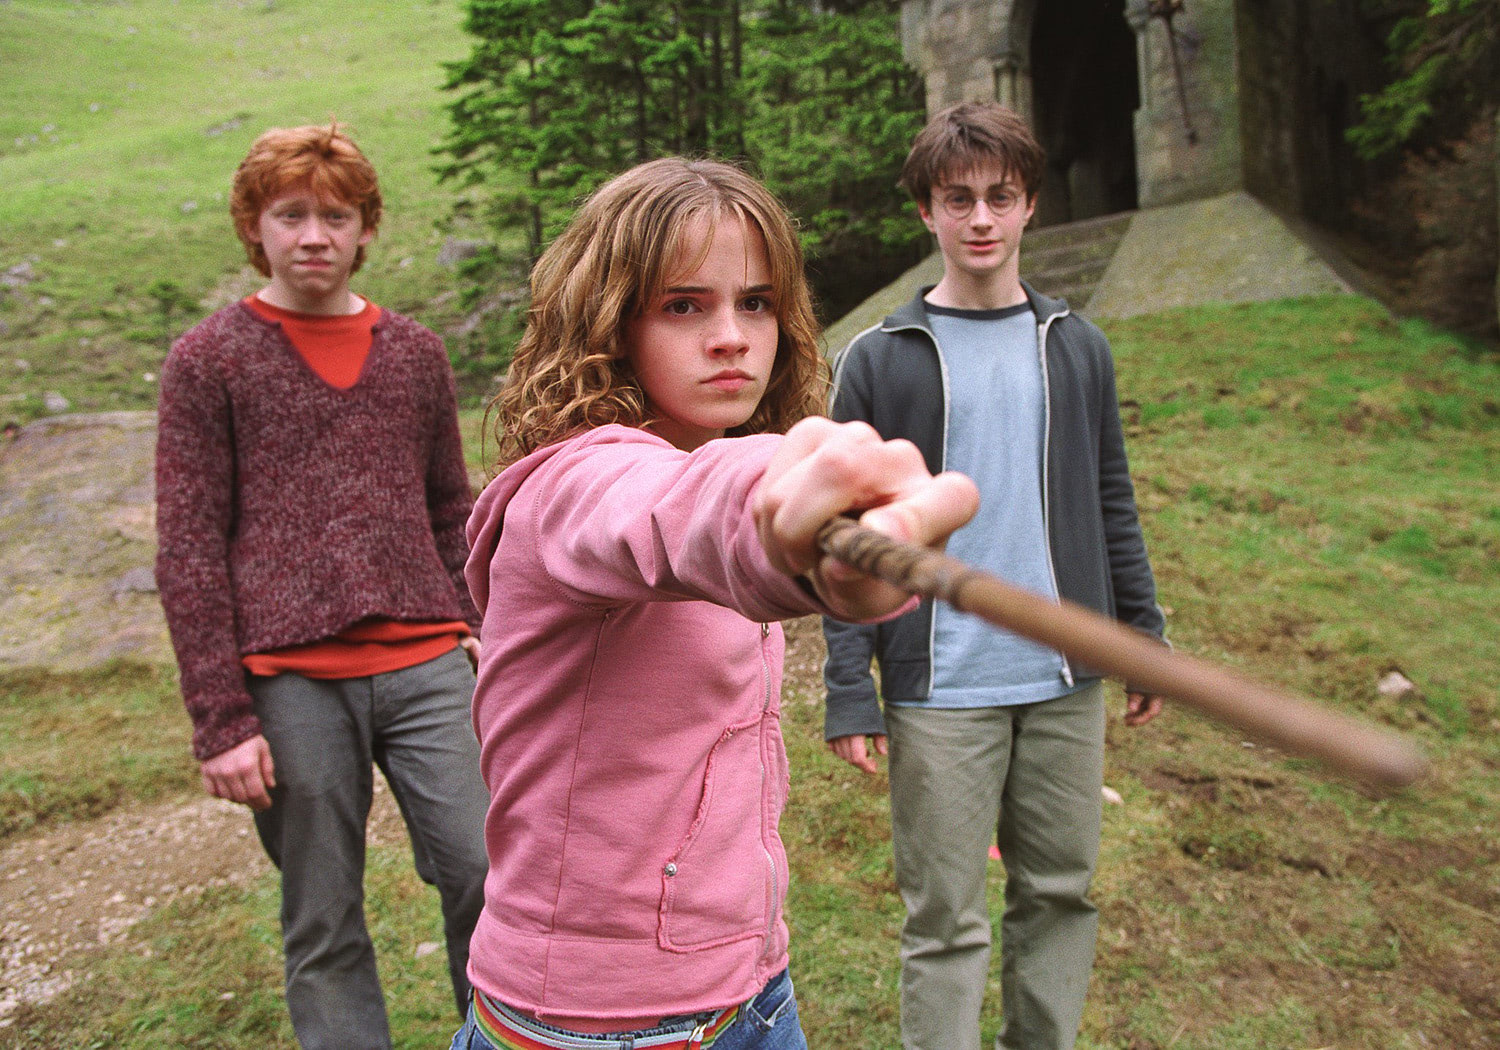 Ron, Hermione and Harry confront Draco